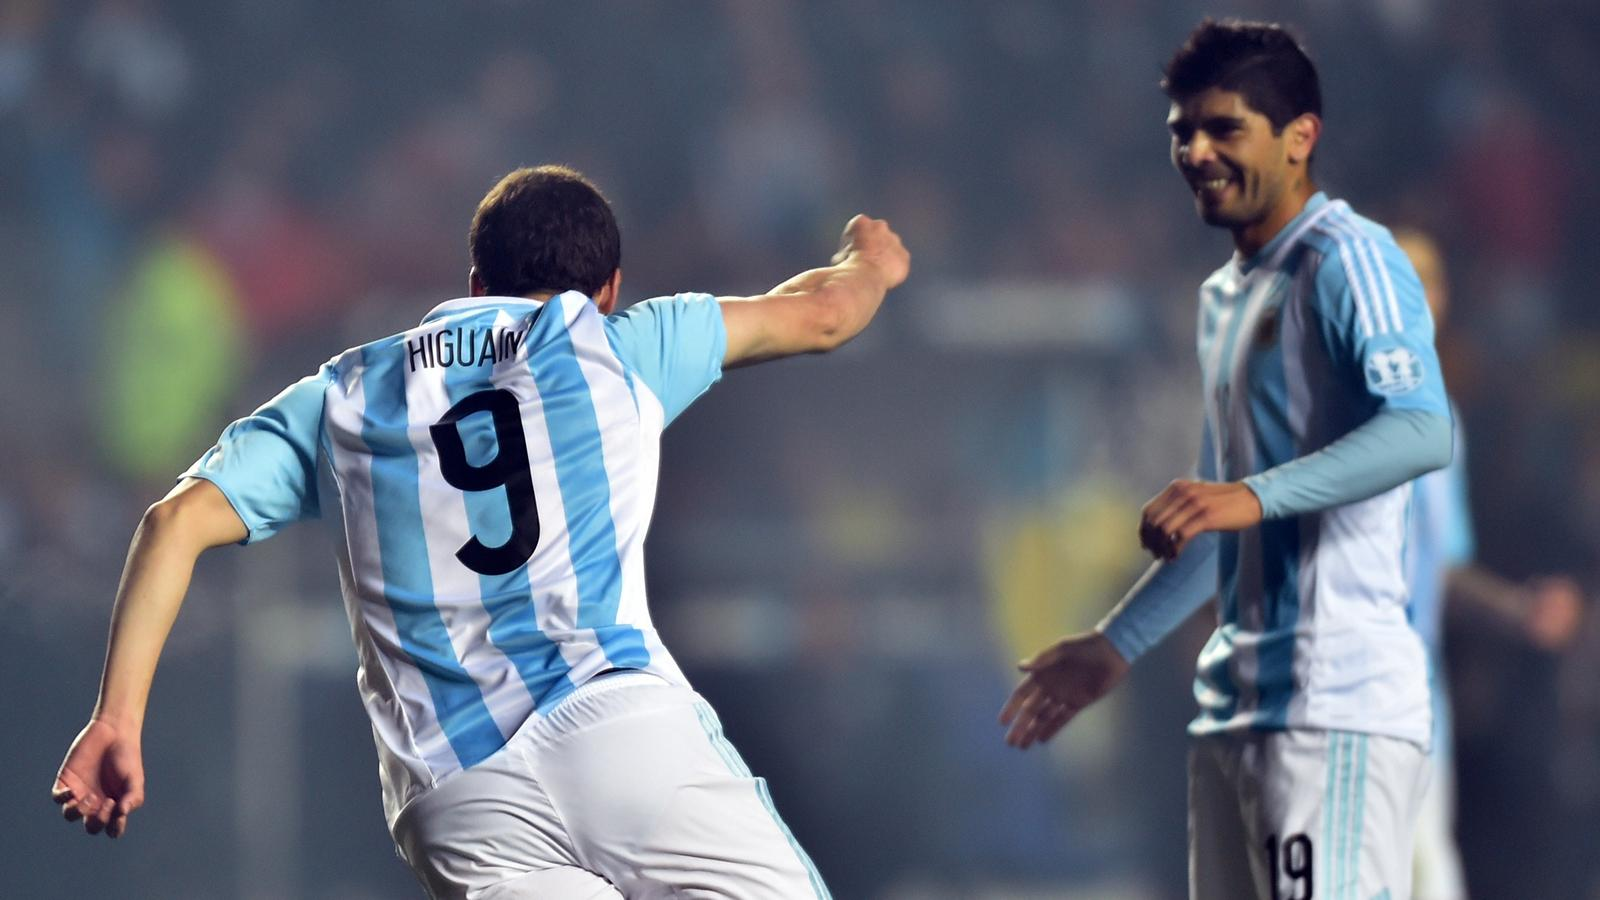 Gonzalo Higuain (Argentina) celebrates after scoring against Paraguay - Copa America on June 30, 2015